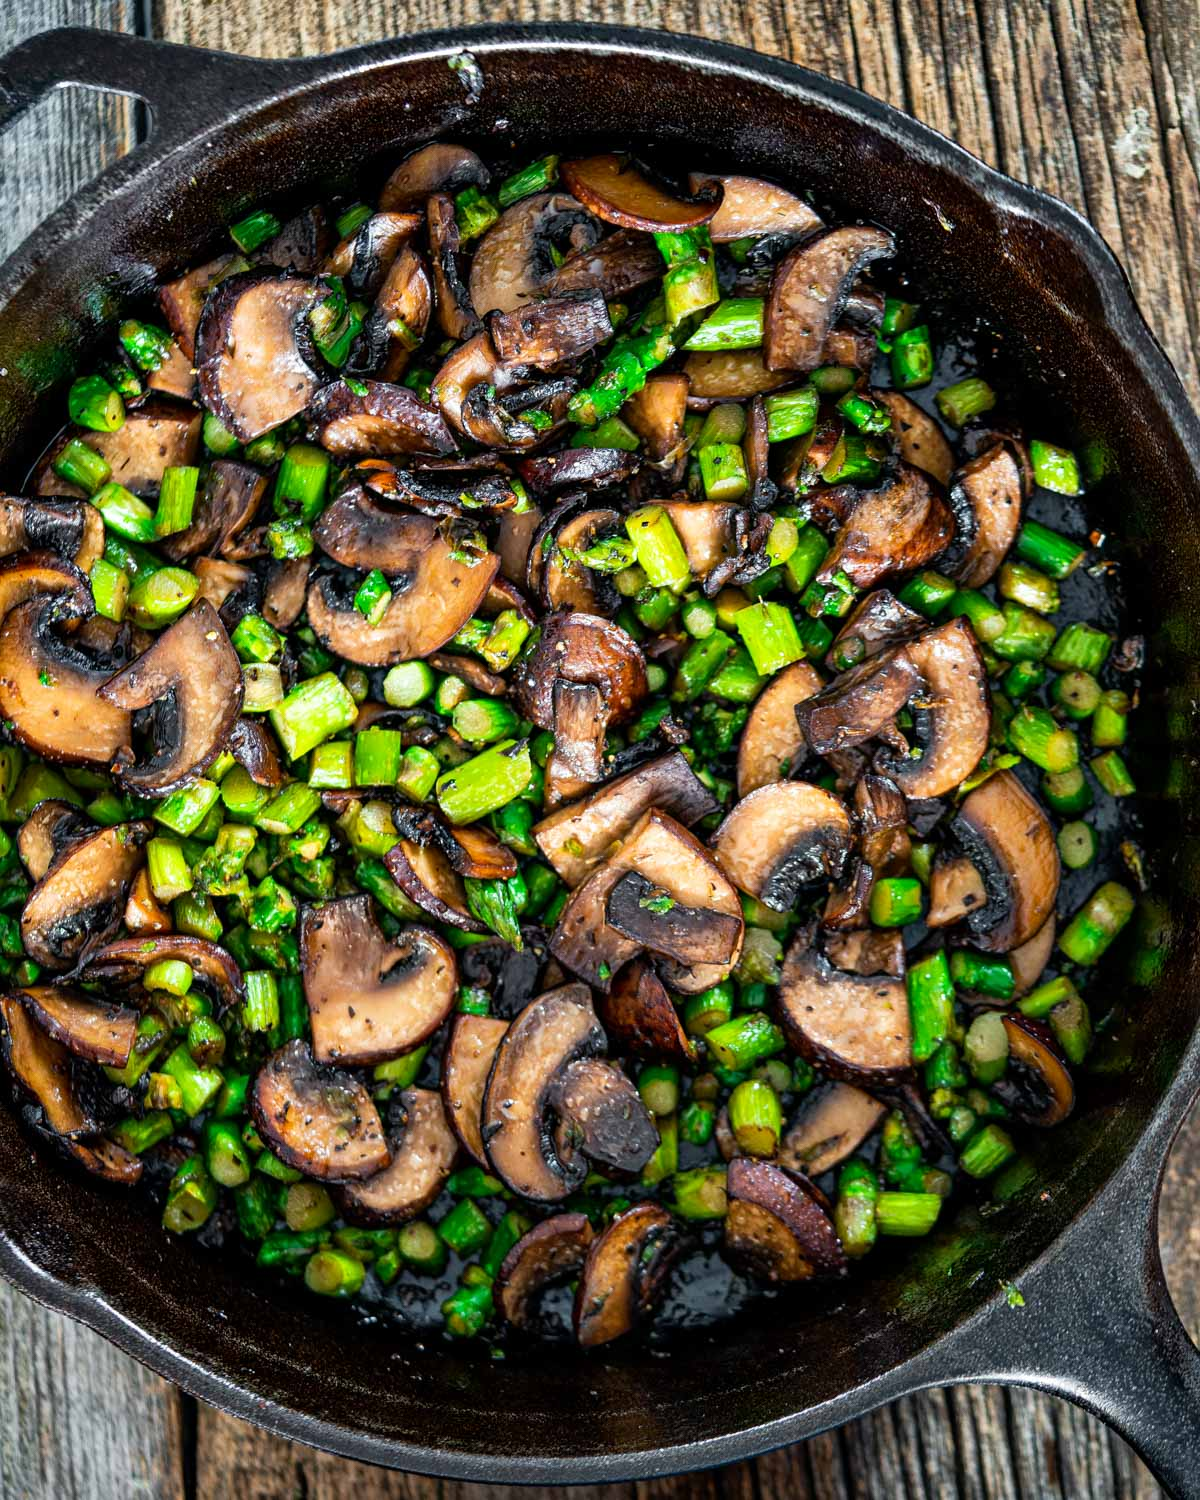 sautéd mushrooms and asparagus in a black skillet